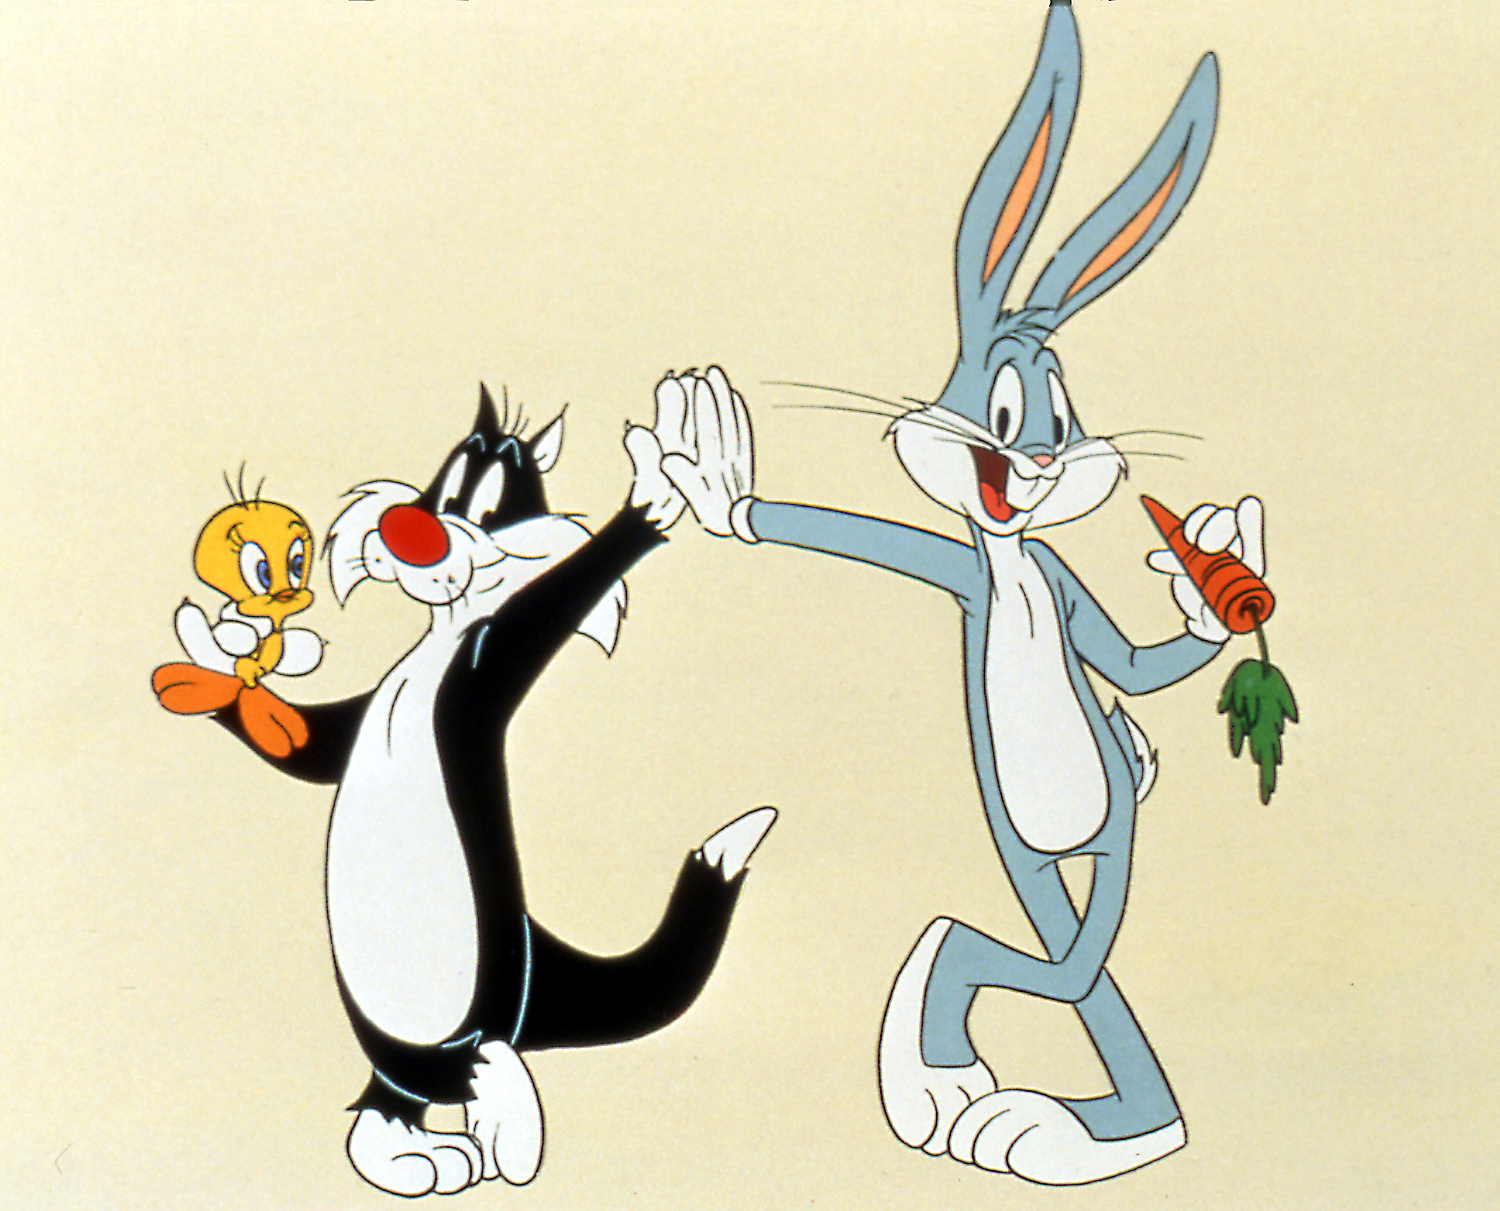 Free Download Bugs Bunny Hd Wallpapers High Definition Iphone Hd